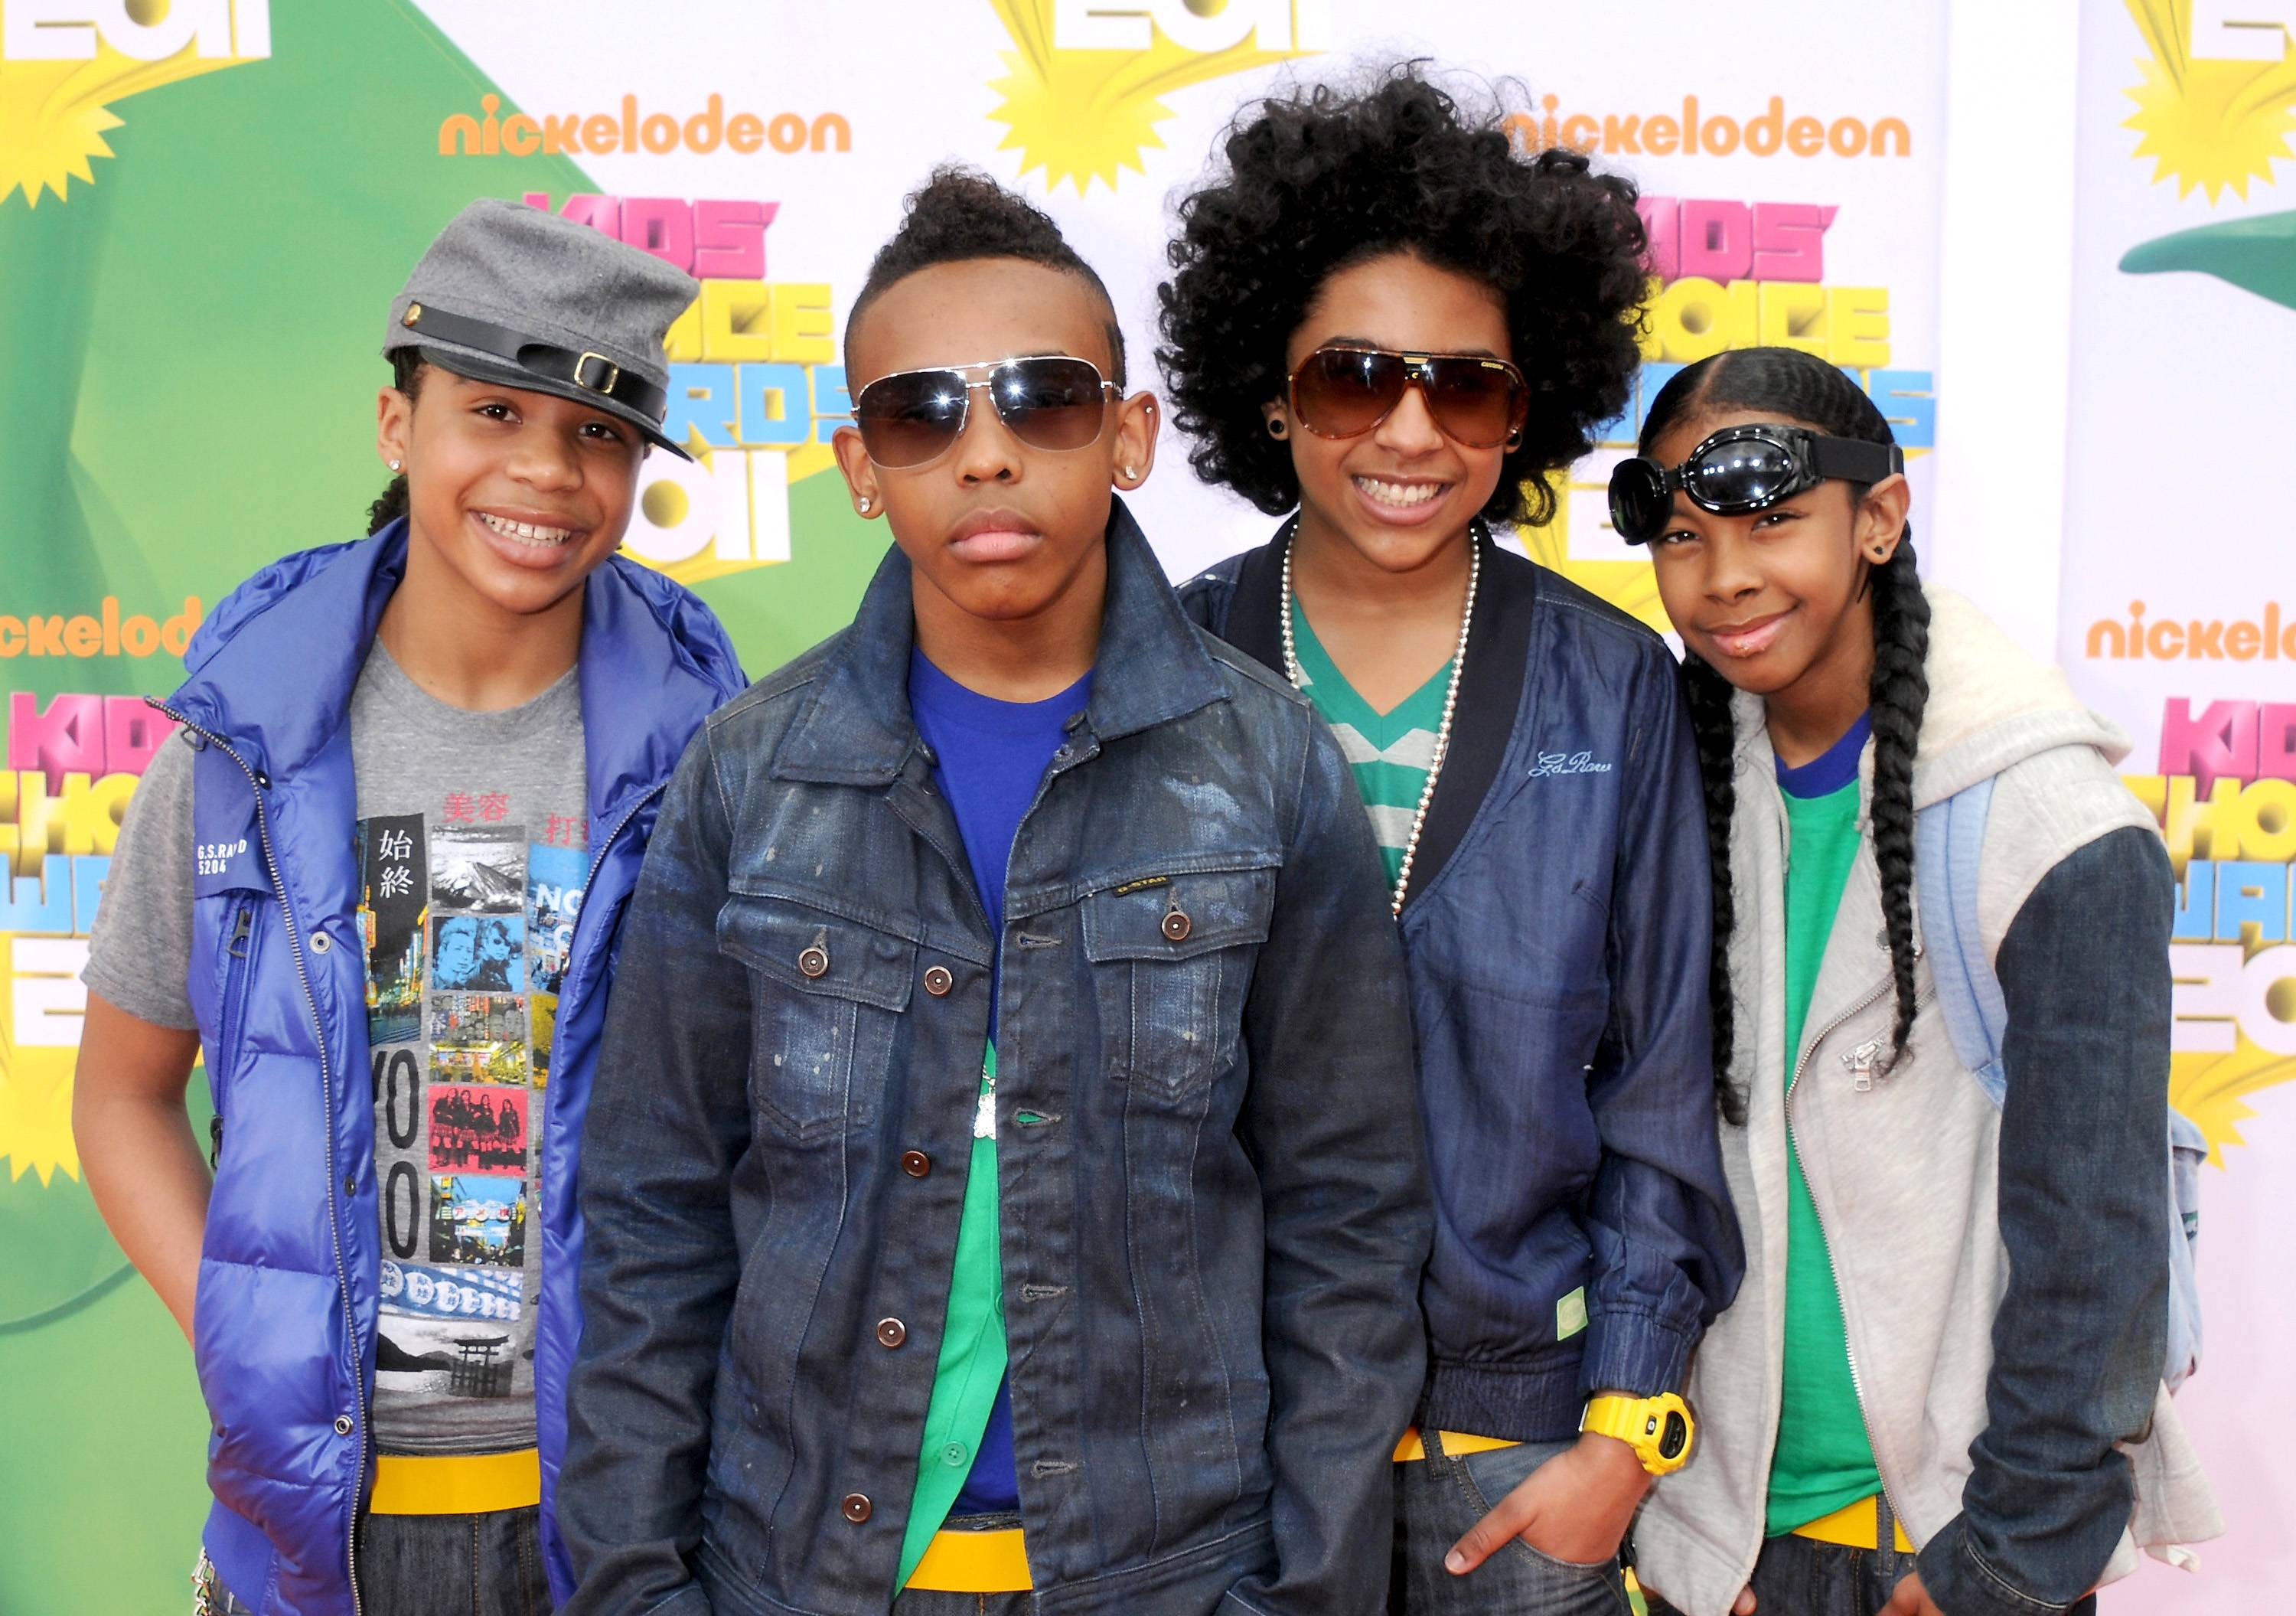 The Elements of Style - Fans love Mindless Behavior's young, fresh style, from the shoes to the shades to the wardrobe. And let's not forget their hair!(Photo by Gregg DeGuire/PictureGroup)